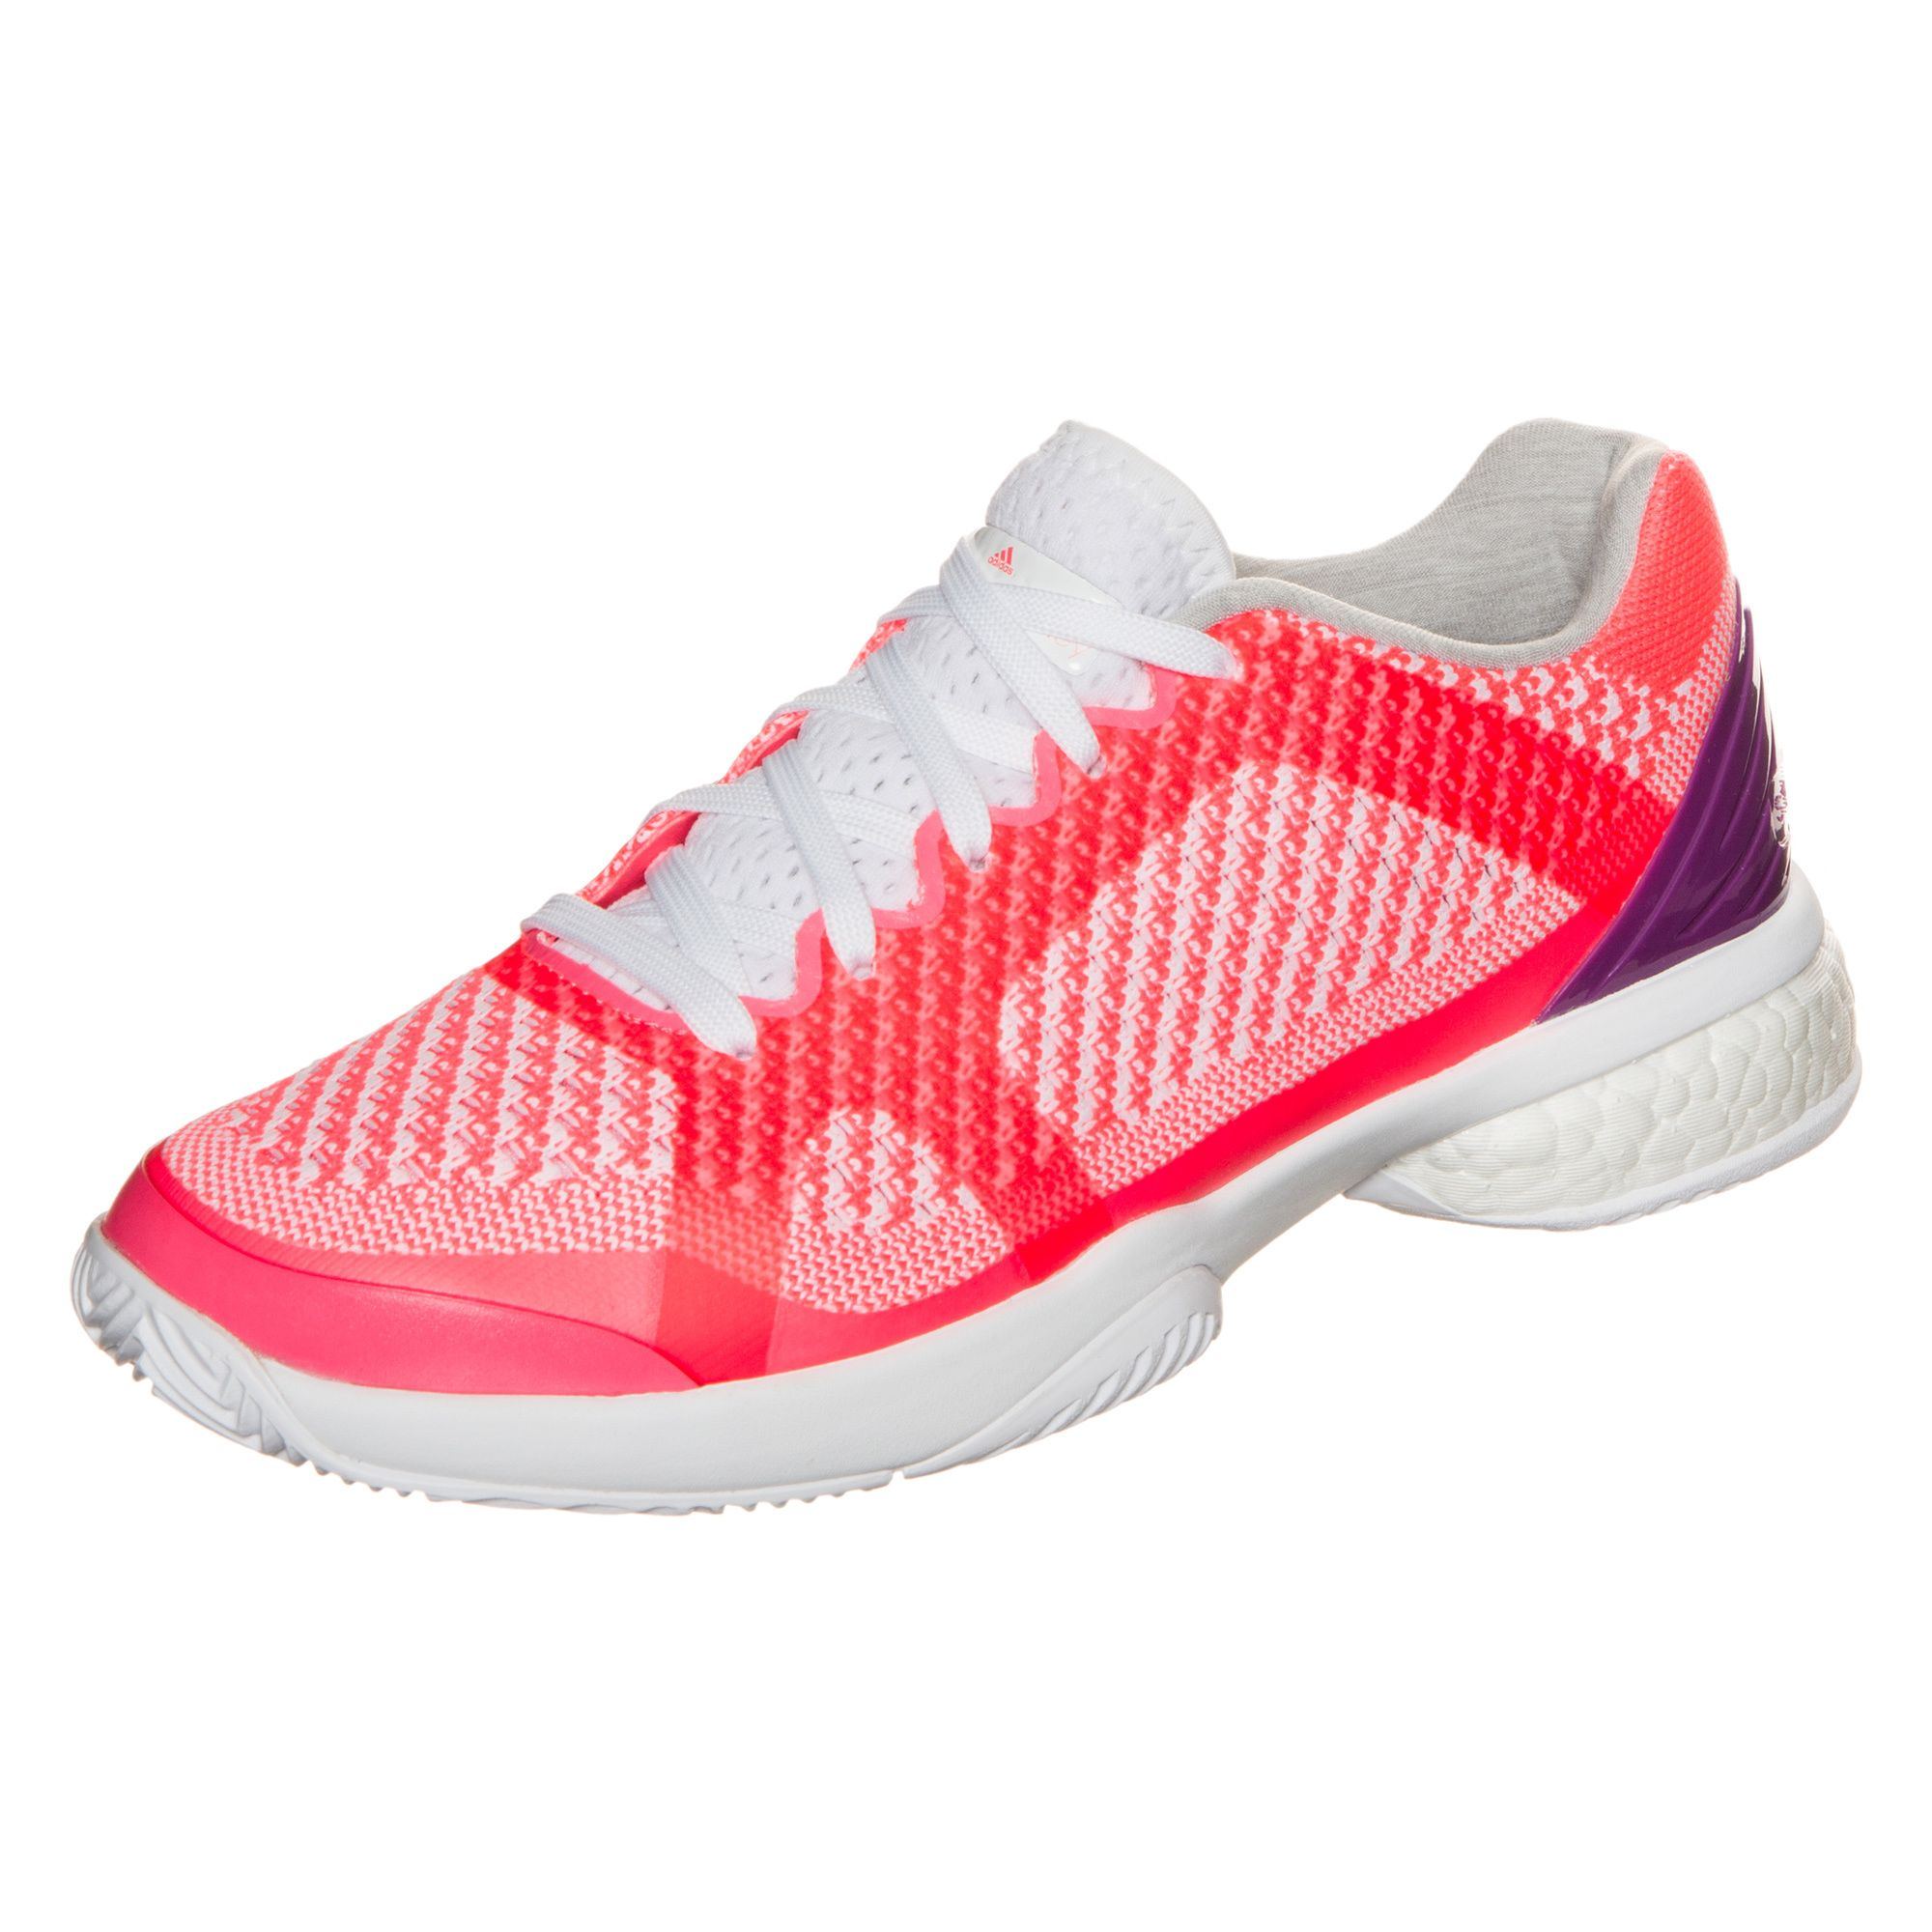 ADIDAS PERFORMANCE adidas Performance Stella McCartney Barricade Boost Tennisschuh Damen